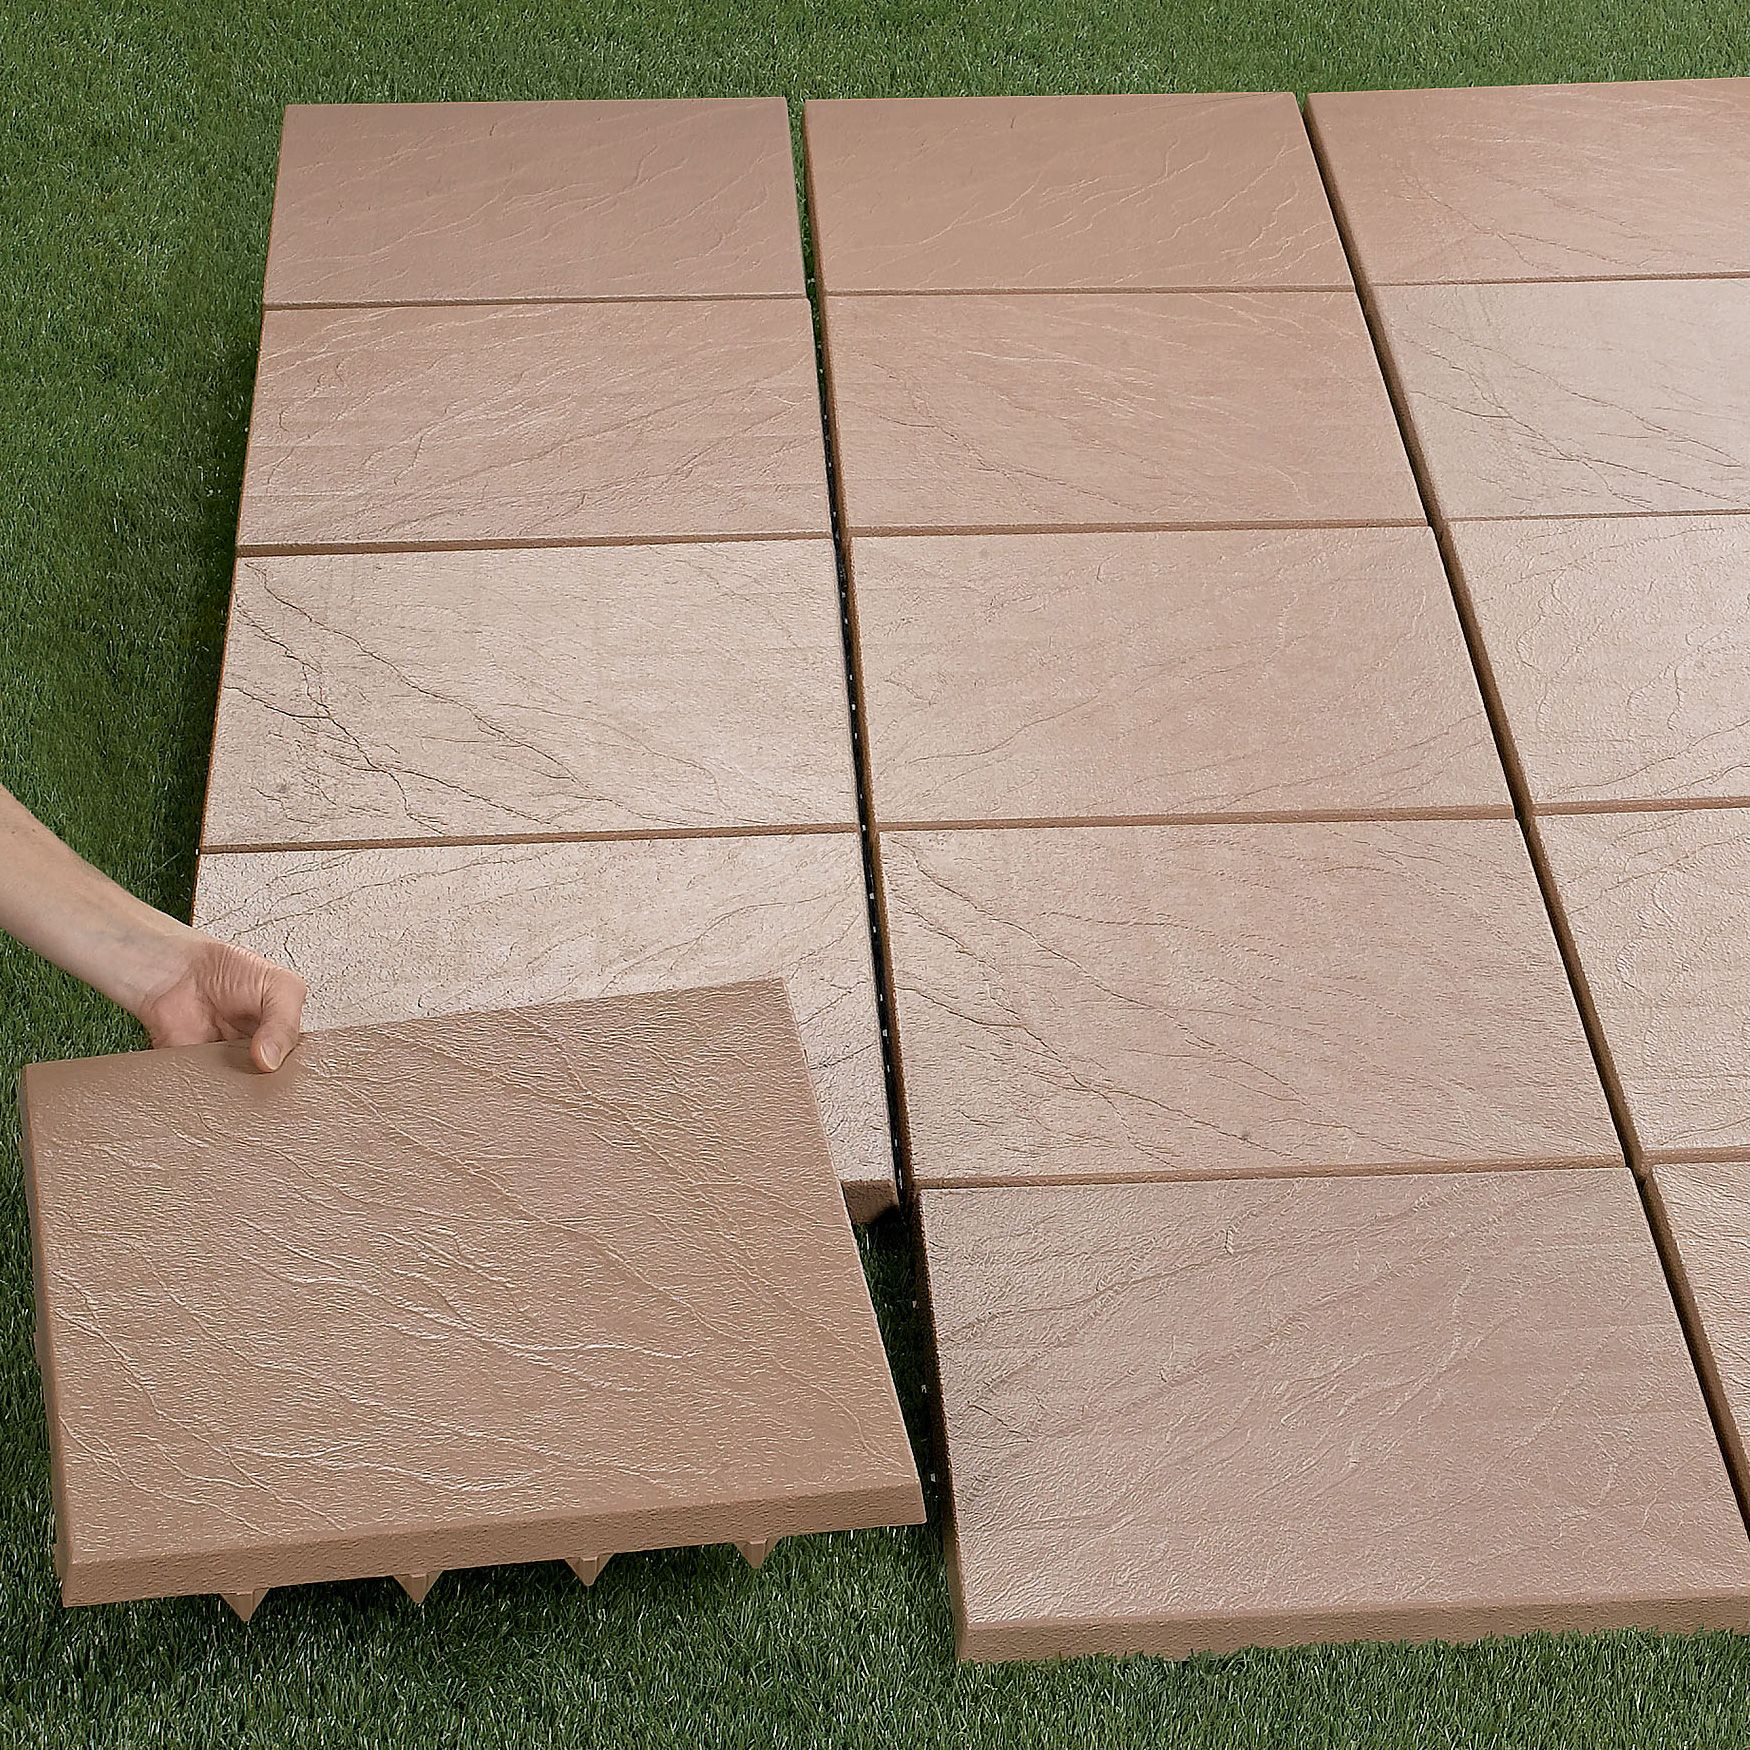 Lovely 20 Patio Tiles $236. Create An Instant Patio On Any Grass, Dirt Or